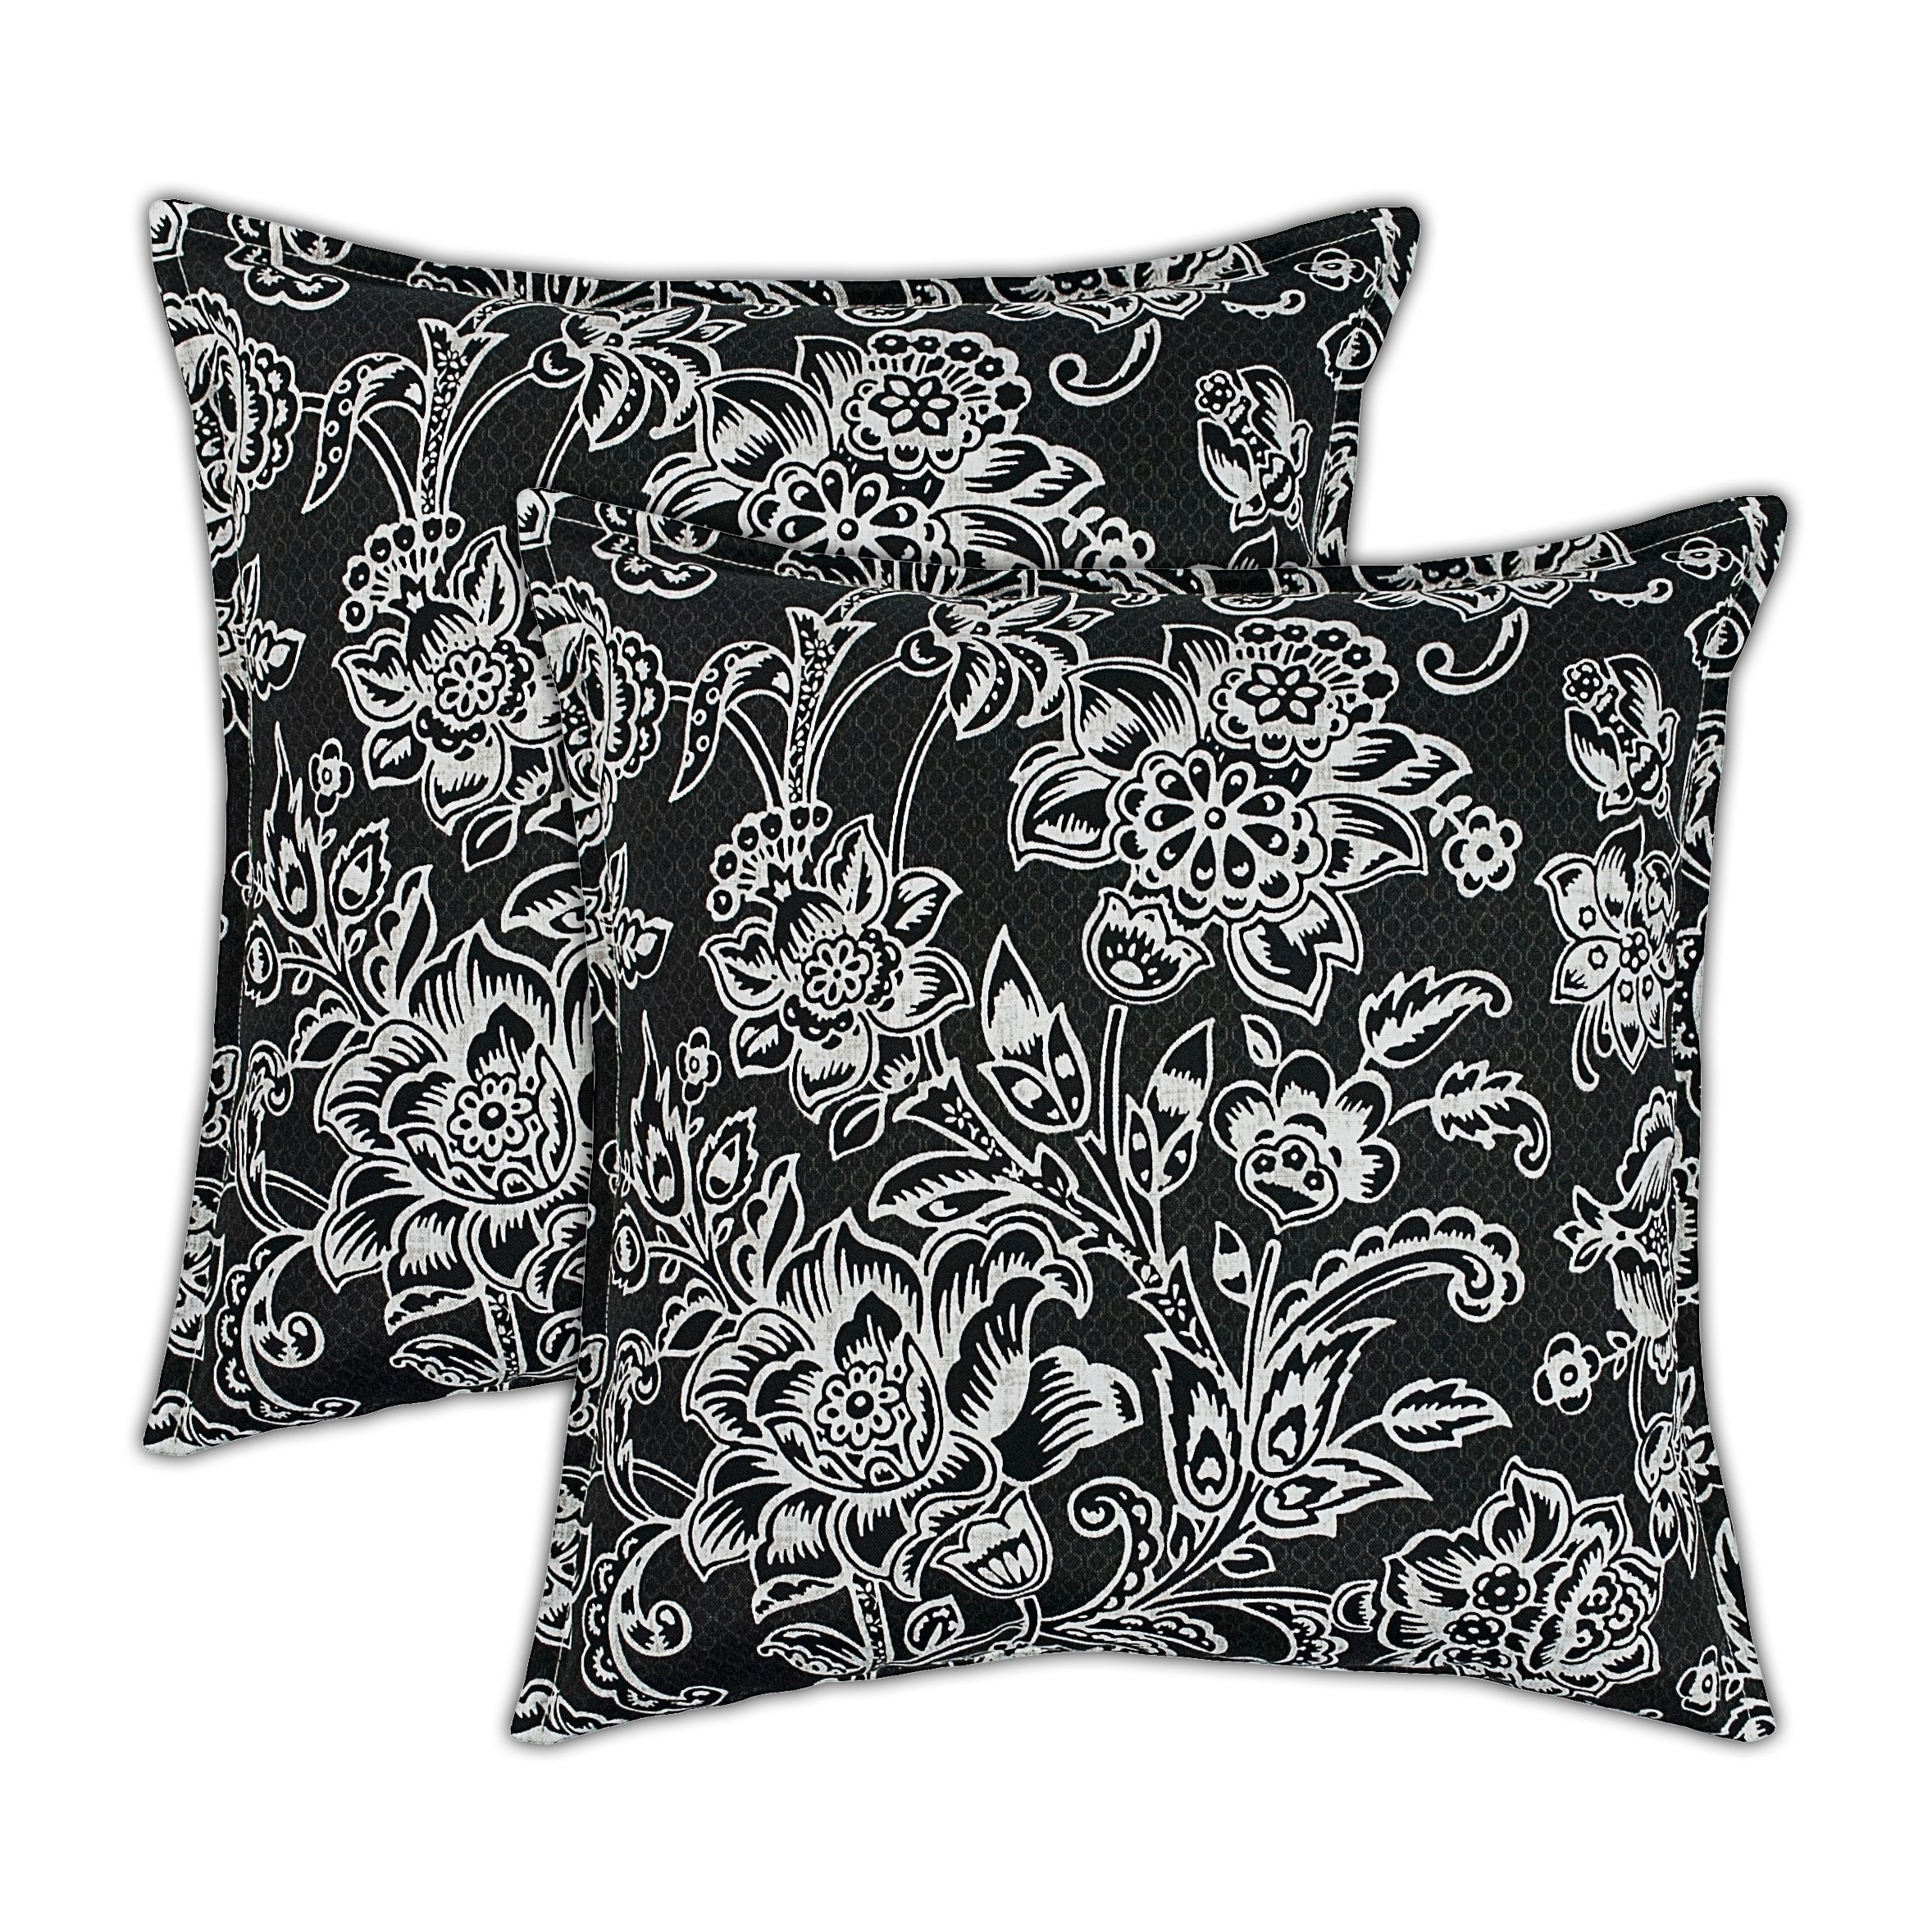 Sherry Kline Riviera 20-inch Outdoor Pillows (Set of 2) - 20 X 20